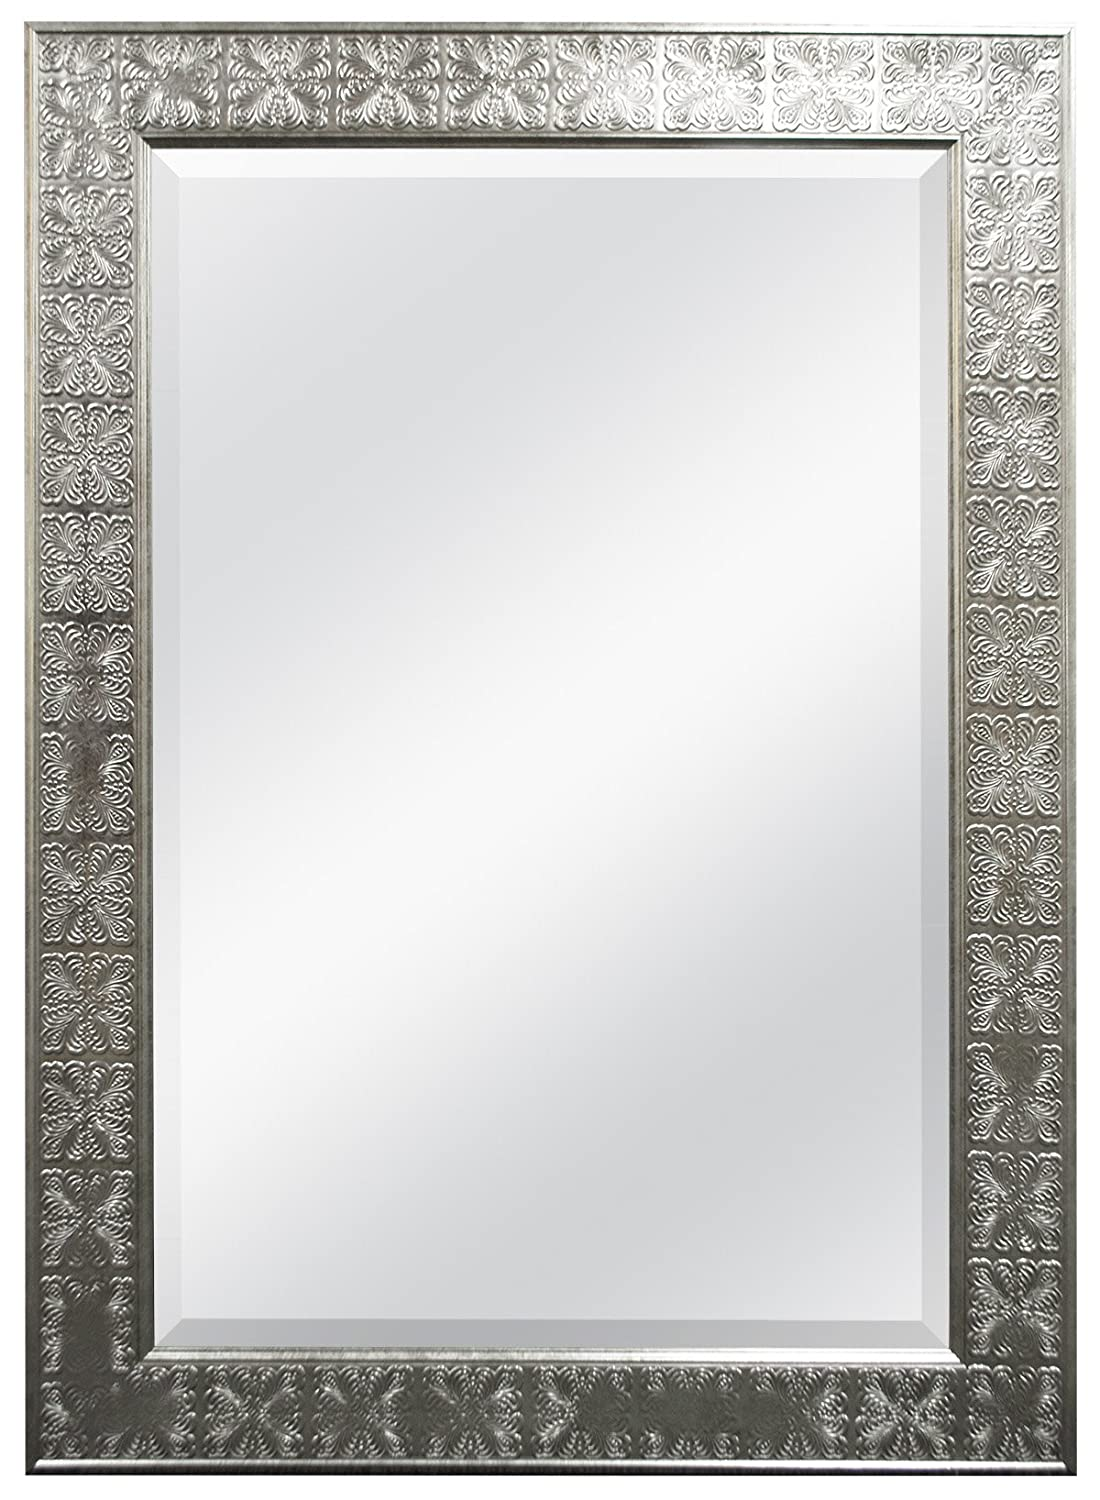 MCS 24 by 36-Inch Beveled Mirror, 32 by 44-Inch, Medallion Finish, Stamped Silver MCS Industries Inc. 47700